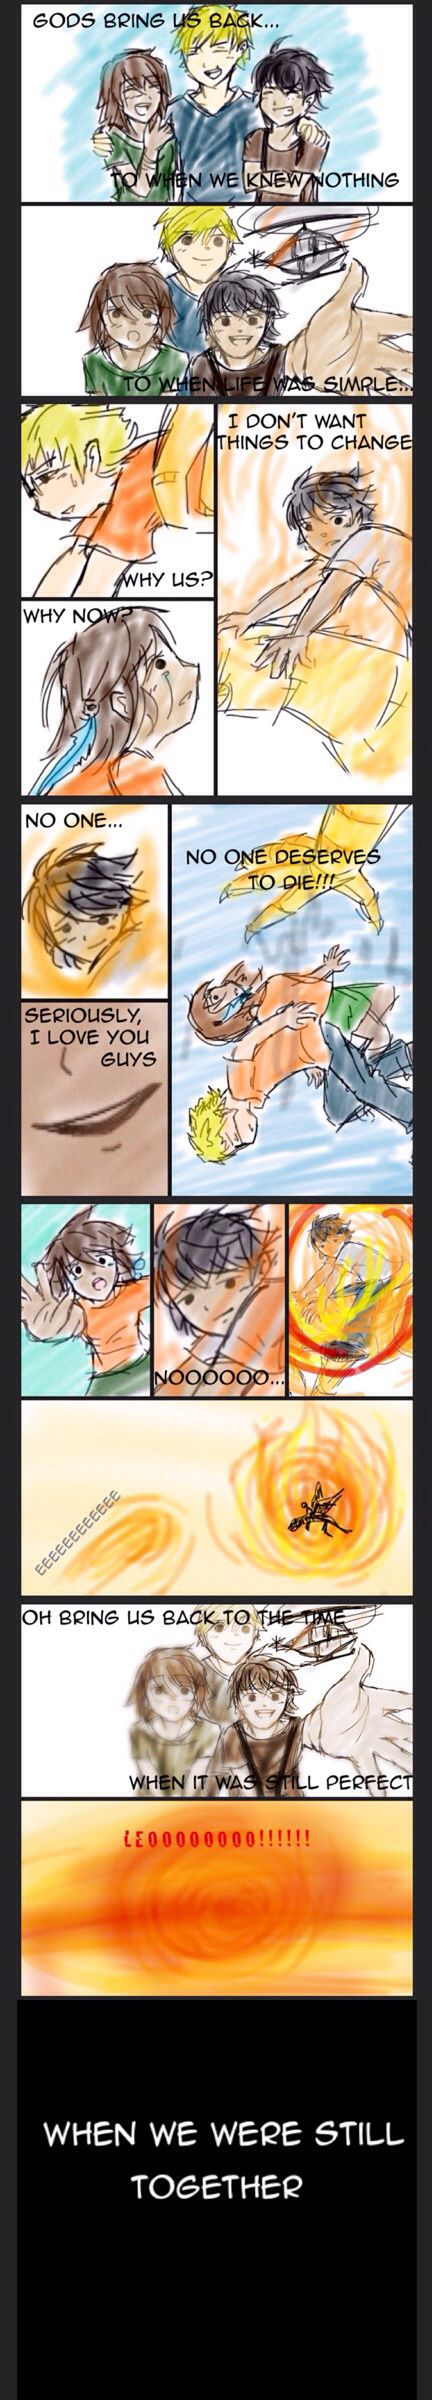 Blood Of Olympus SPOILER! The last time Piper saw Leo alive THE FEELS!!! By @Junicole 1997